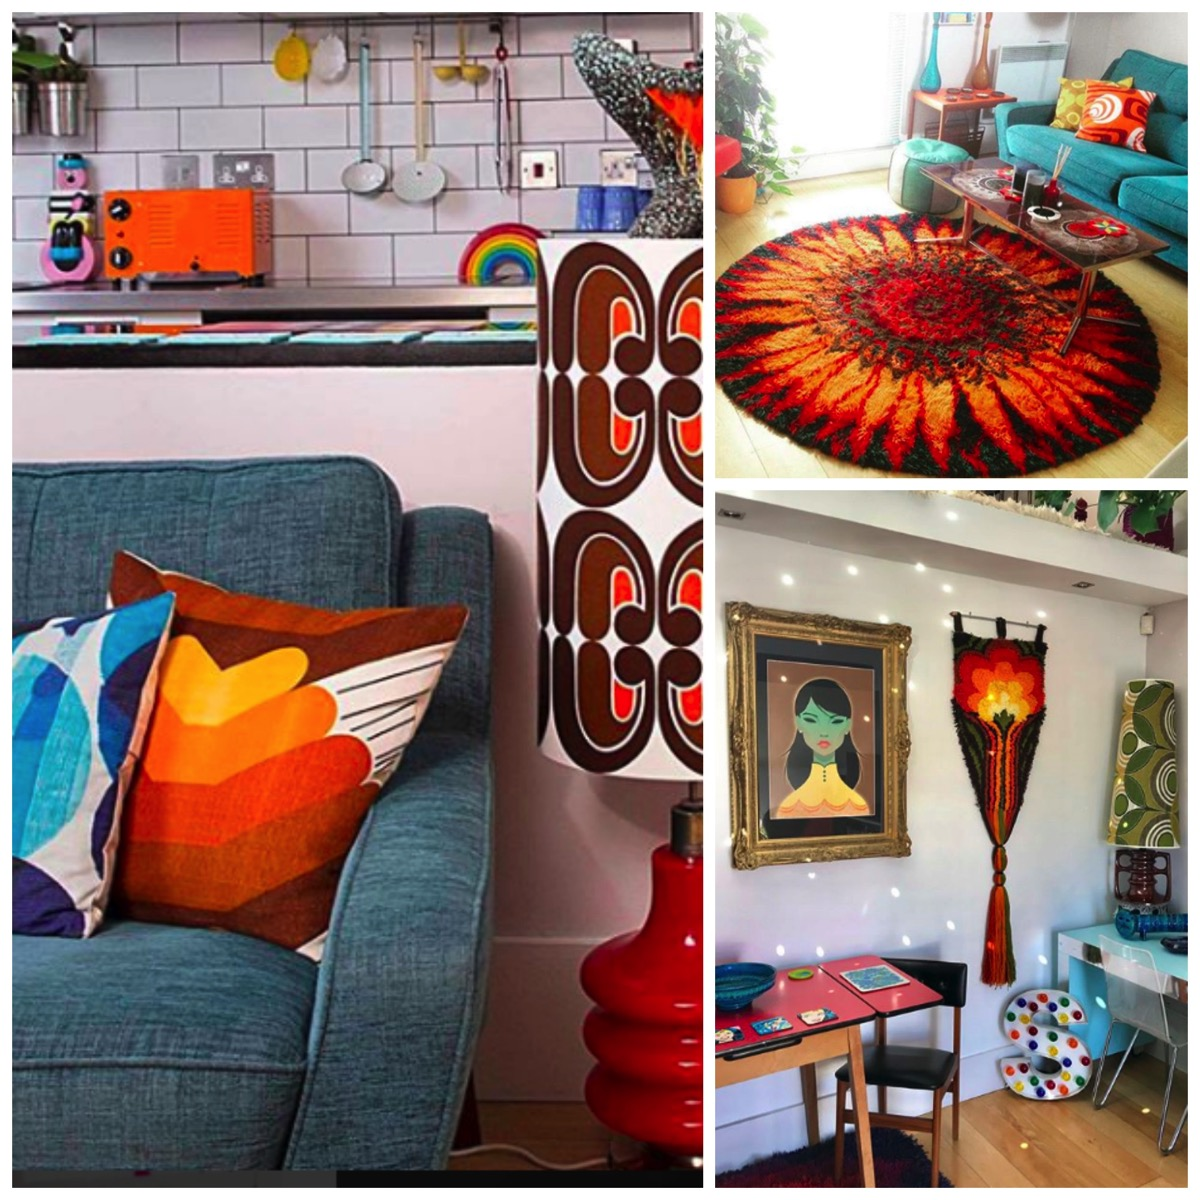 Stuart eminson retro style orange and red home